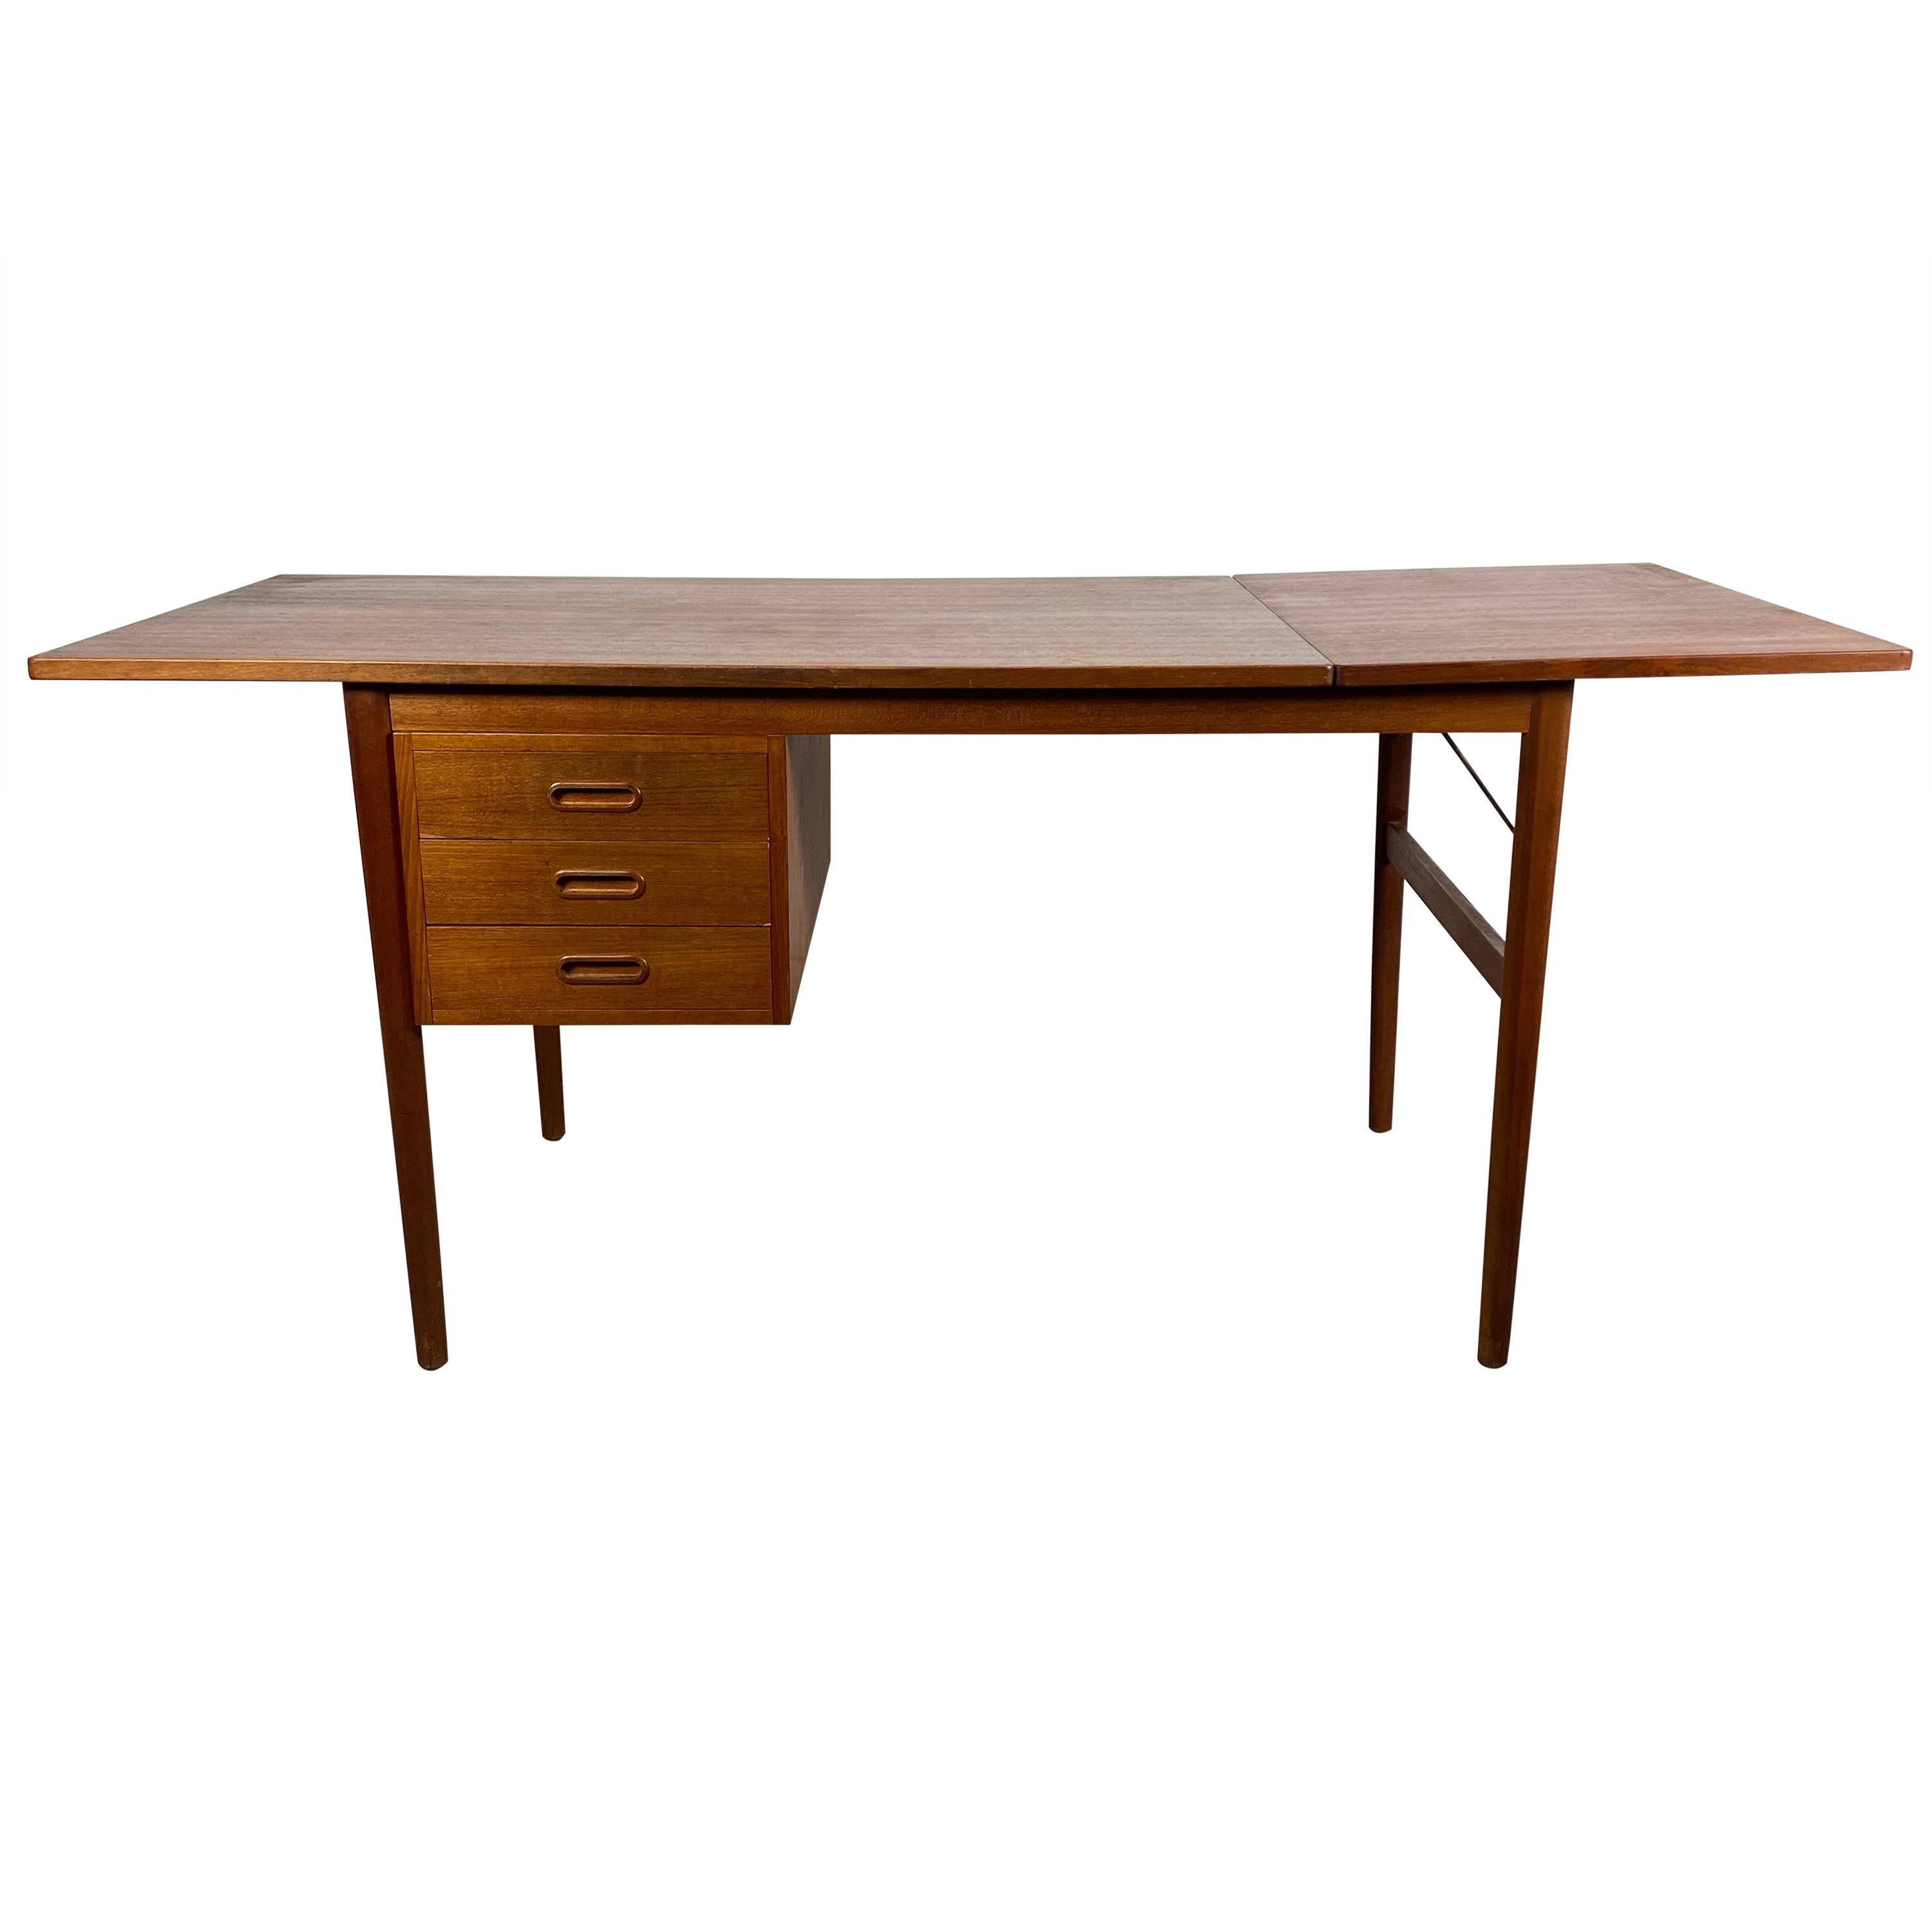 Classic Teak Drop Leaf Desk, Denmark, Attributed to Arne Vodder